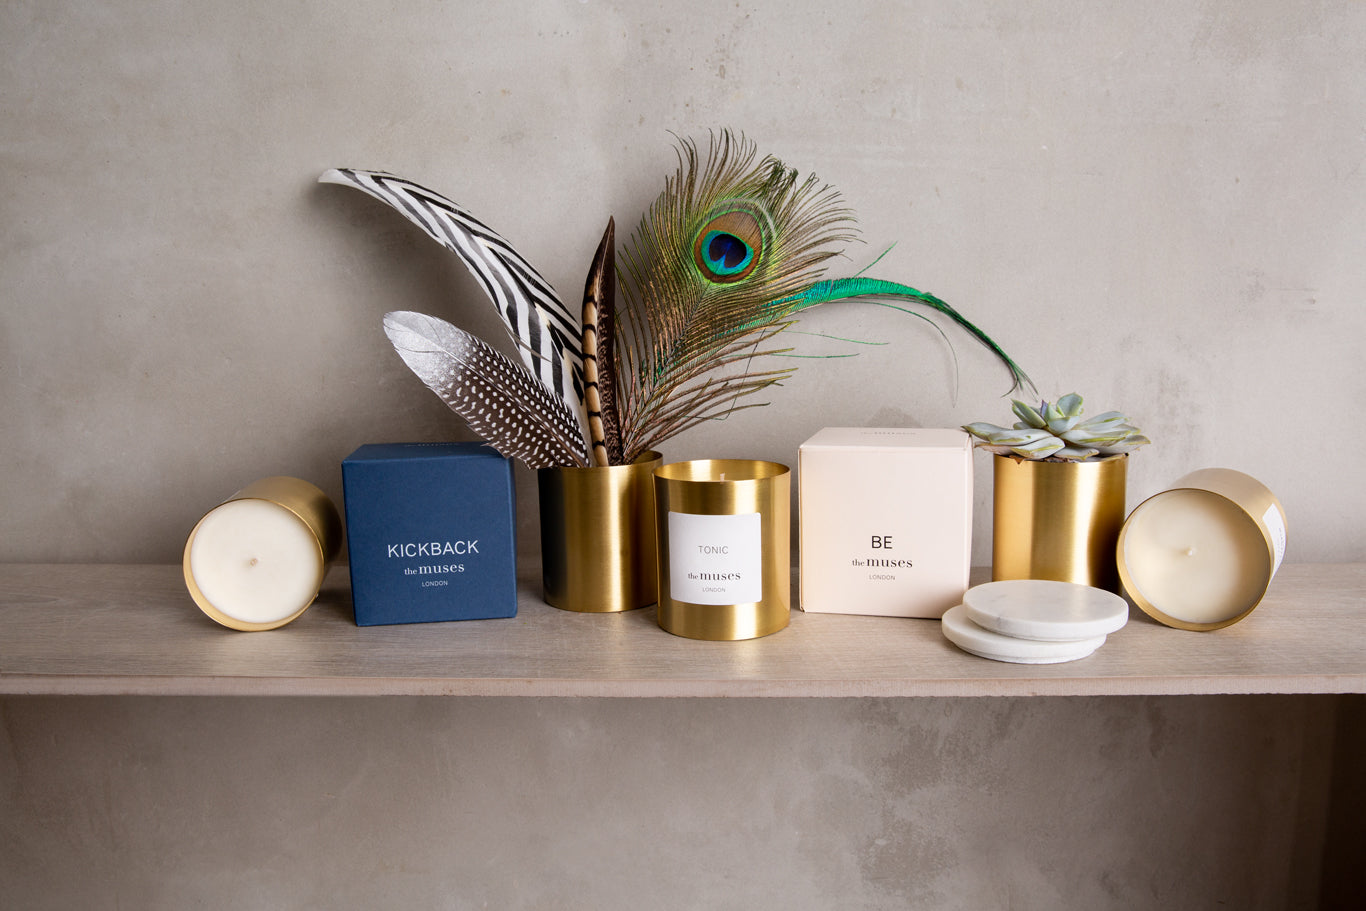 The Muses candles, boxes and containers on display with exotic feathers and marble lids